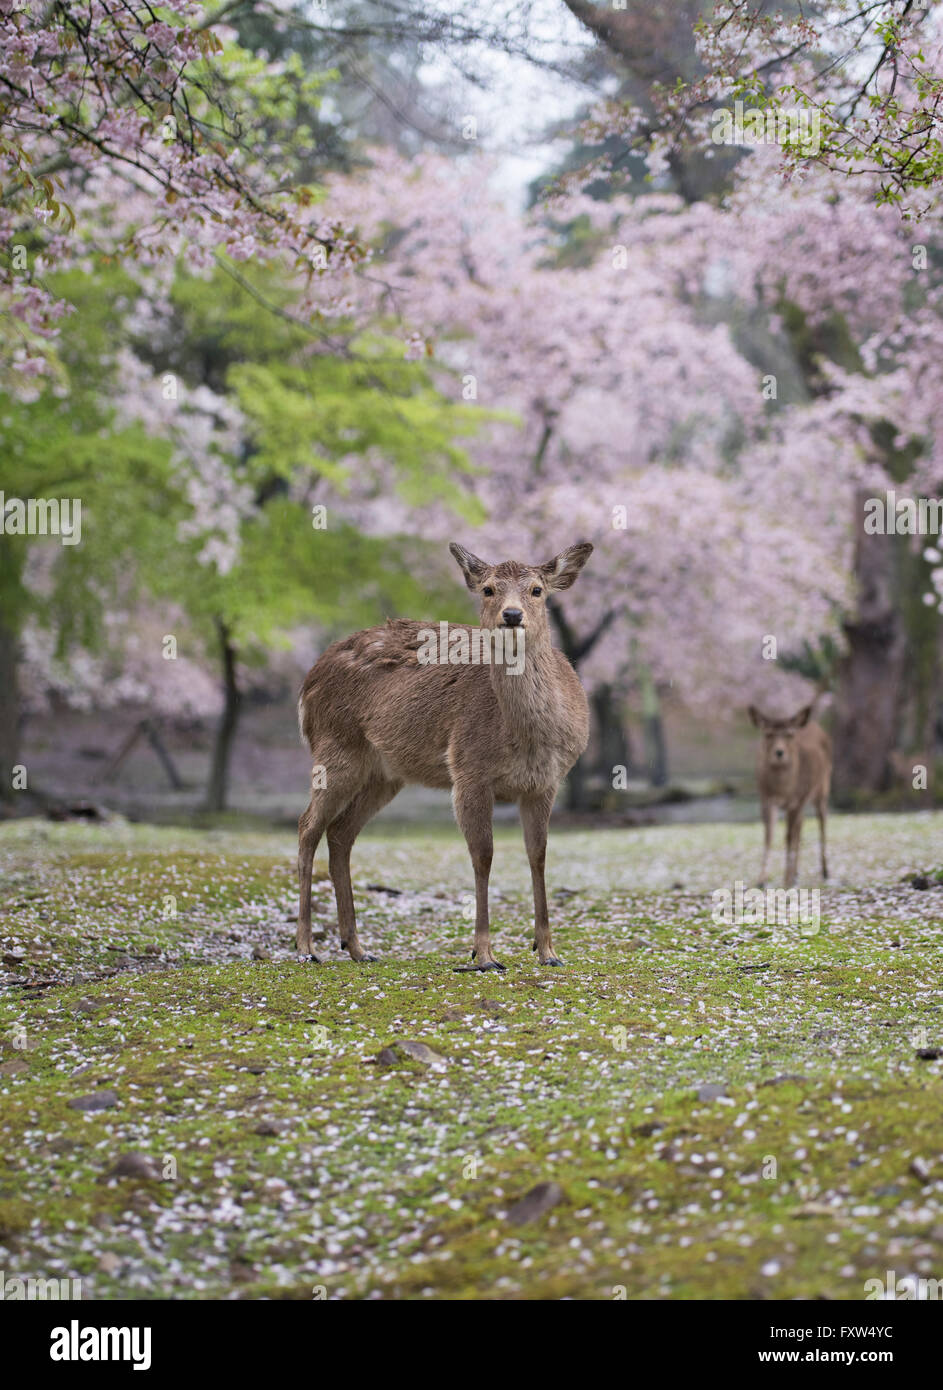 Deer in Nara Park among the cherry blossom. Nara, Japan - Stock Image